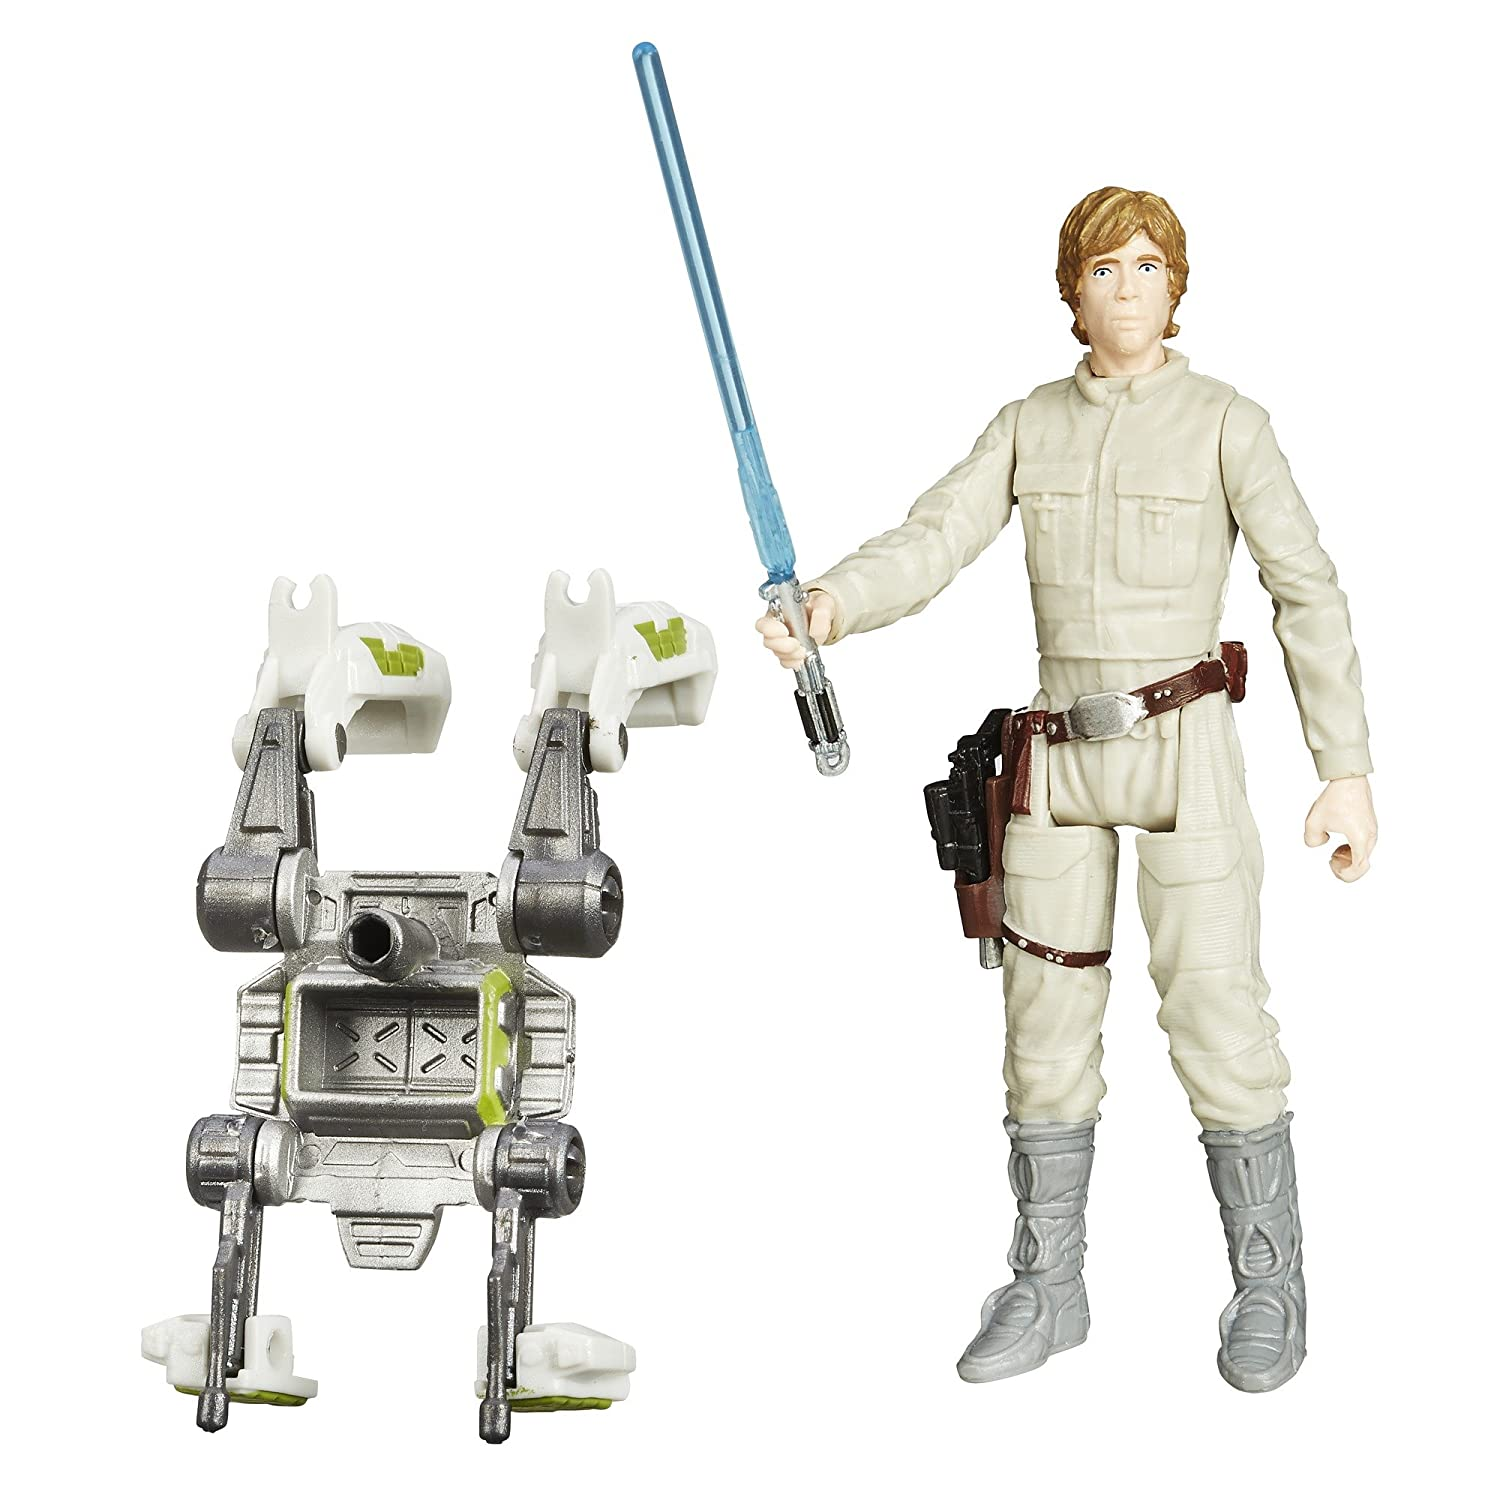 STAR WARS - Episodio V - Figura Forest Mission Luke Skywalker, 9.5cm (B3448)